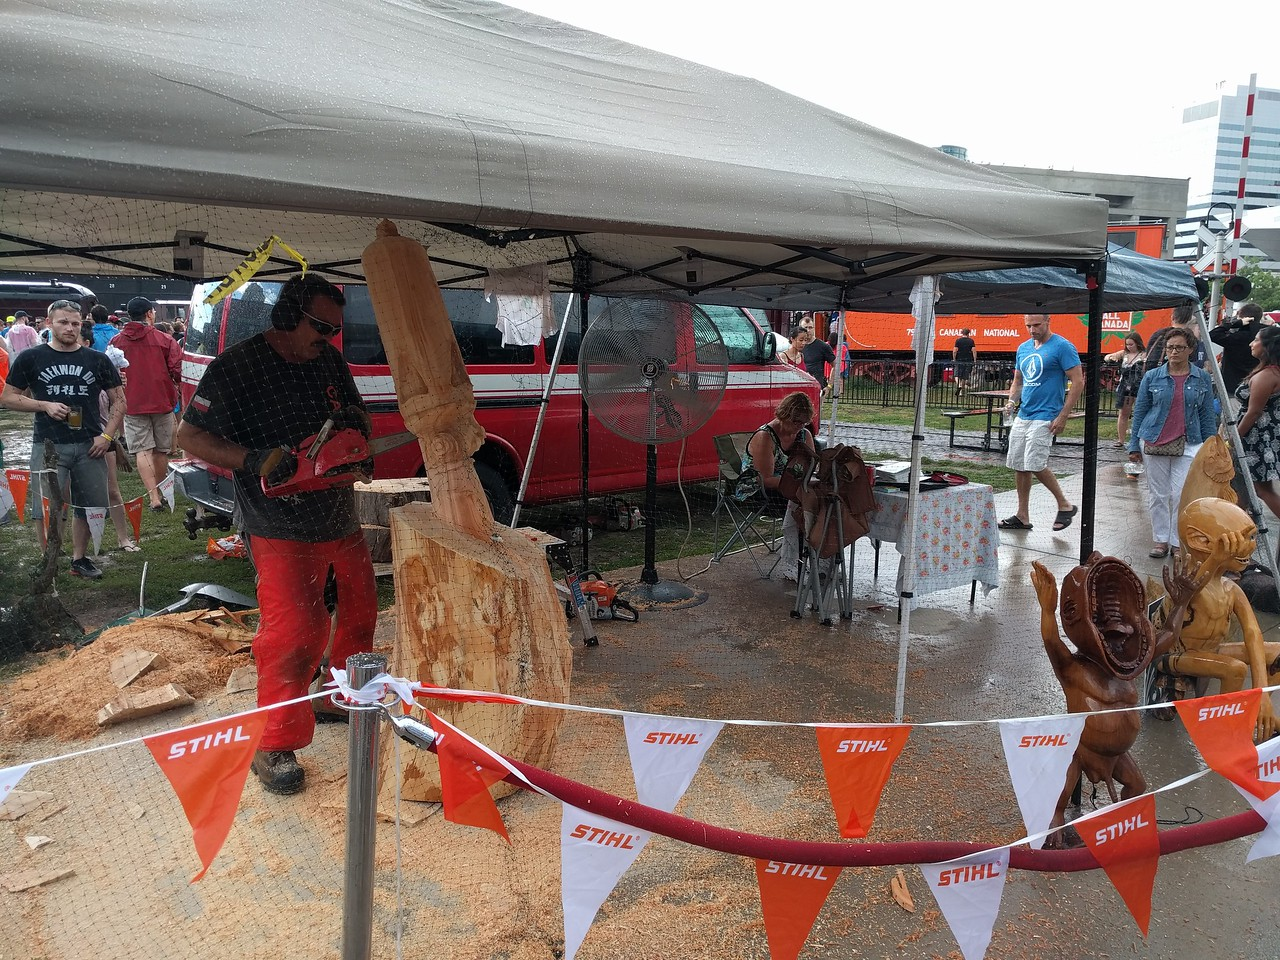 024 - Toronto - Chainsaw Artist at Ontario Craft Beer Festival